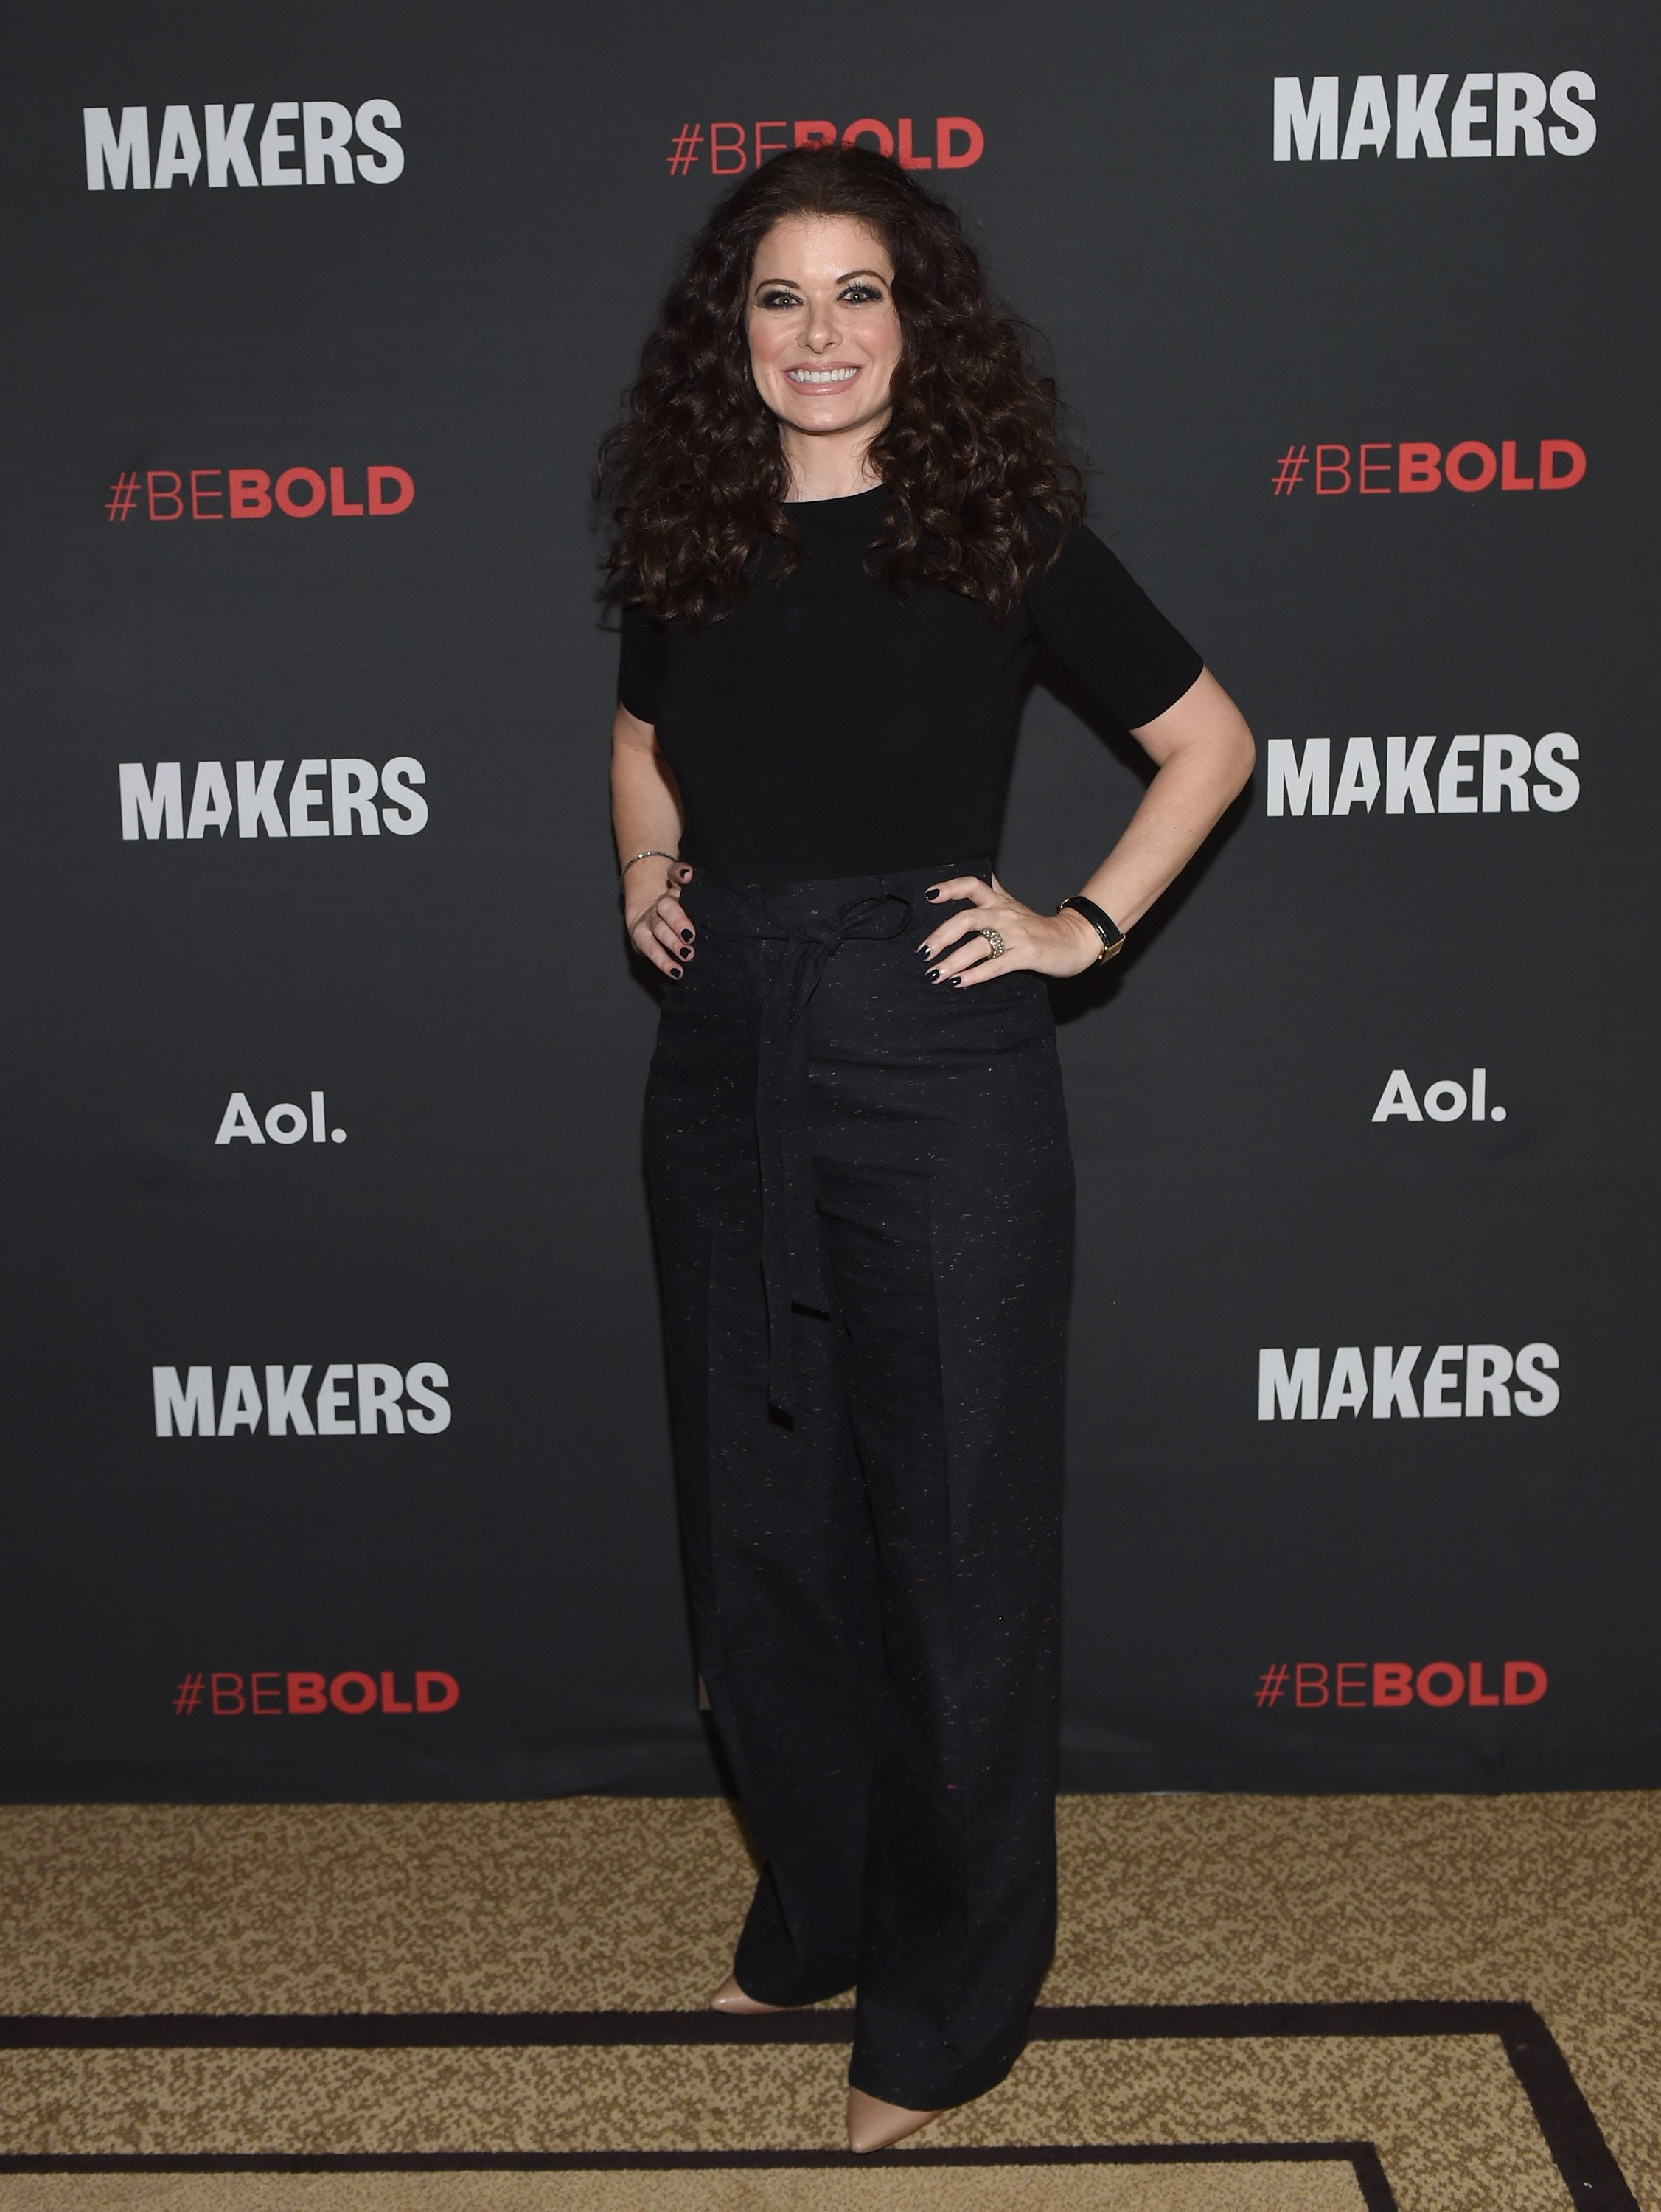 Debra Messing attends the 2017 MAKERS Conference Day 1 at Terranea Resort on February 6, 2017 in Rancho Palos Verdes, Calif.